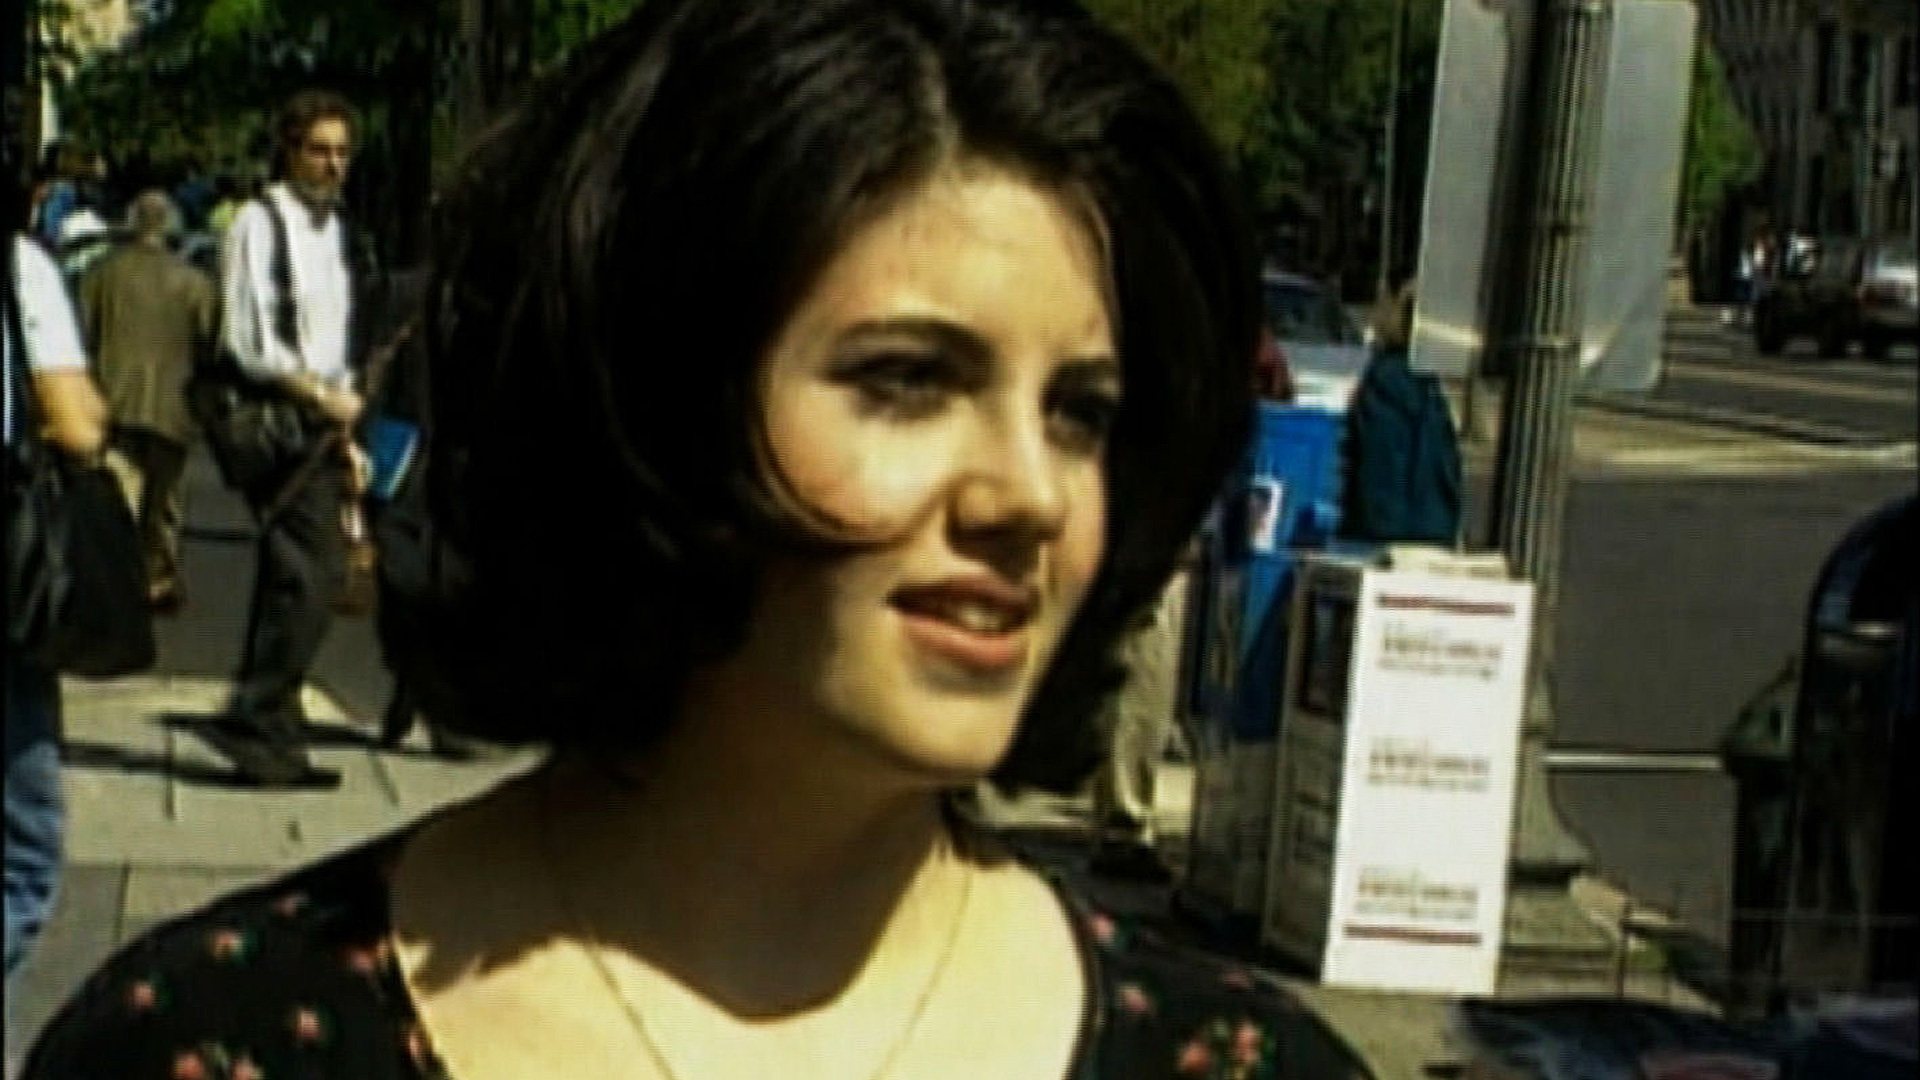 Monica Lewinsky walks along a Washington, D.C. street in this undated photo. (Credit: CNN)